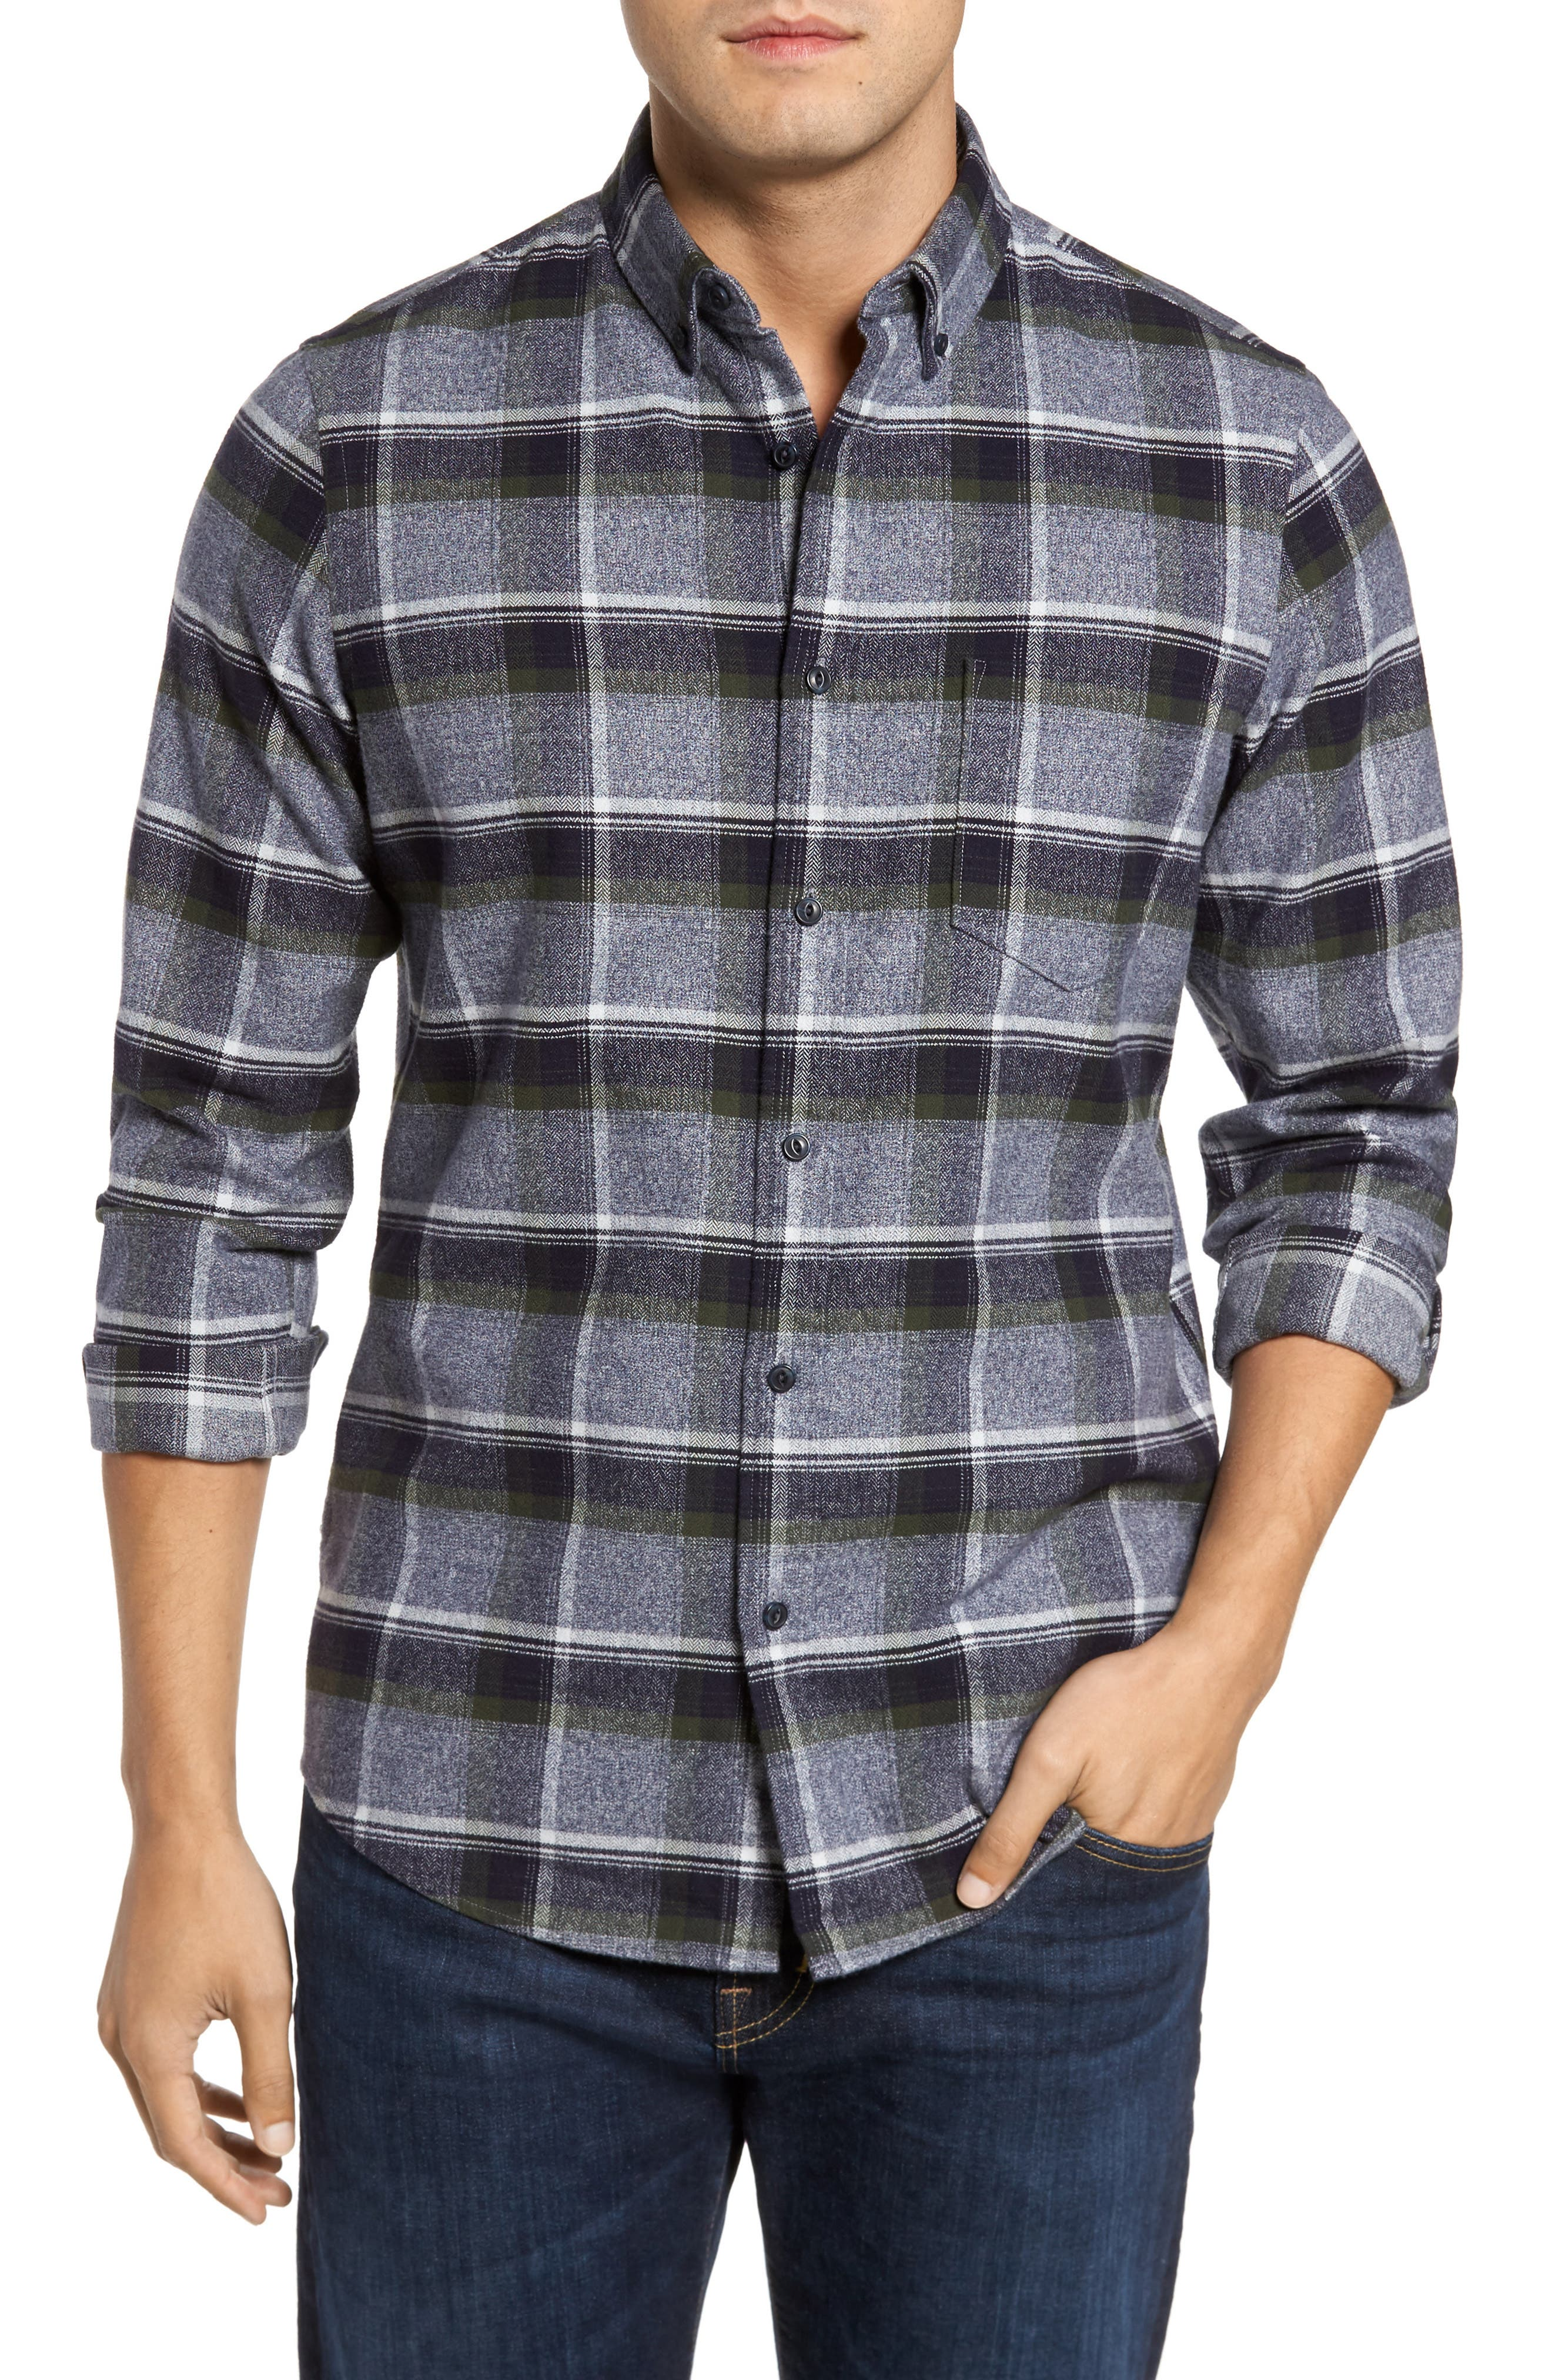 Regular Fit Plaid Flannel Shirt,                         Main,                         color, Navy Iris Olive Exploded Plaid